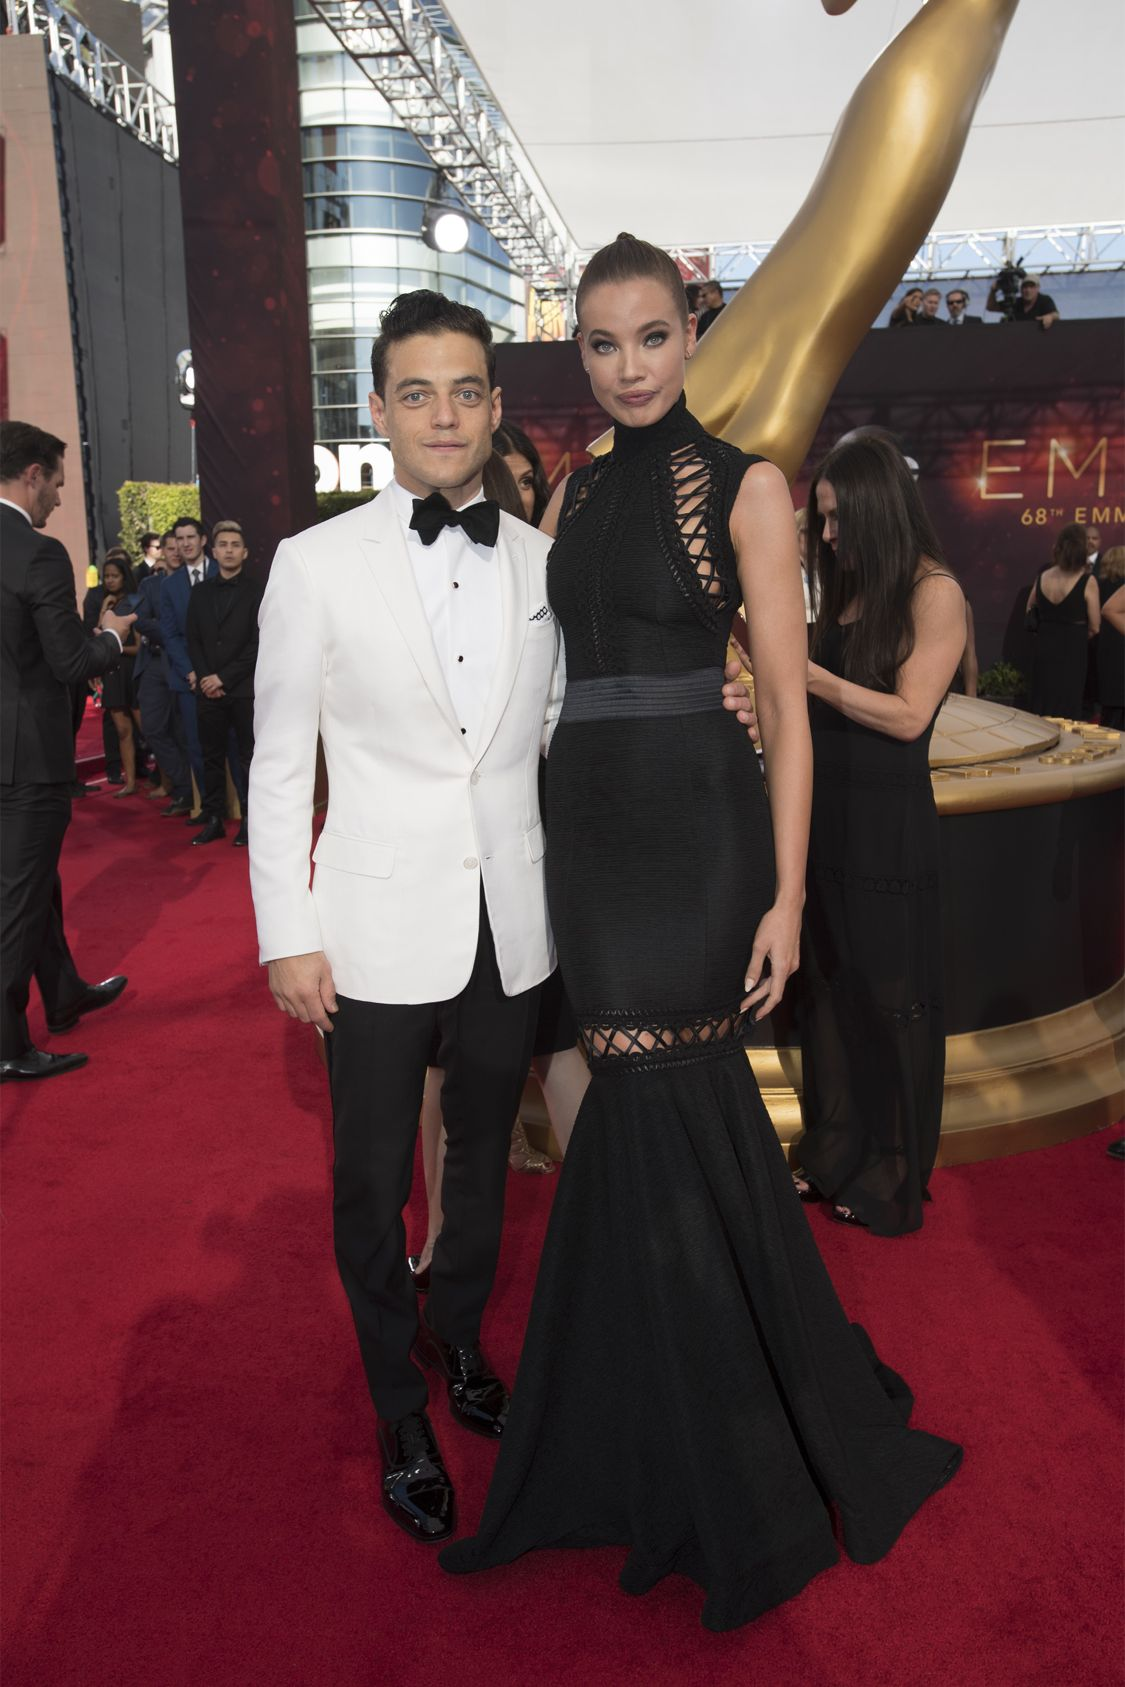 """THE 68TH EMMY(r) AWARDS - """"The 68th Emmy Awards"""" broadcasts live from The Microsoft Theater in Los Angeles, Sunday, September 18 (7:00-11:00 p.m. EDT/4:00-8:00 p.m. PDT), on ABC and is hosted by Jimmy Kimmel. (ABC/Image Group LA) RAMI MALEK"""